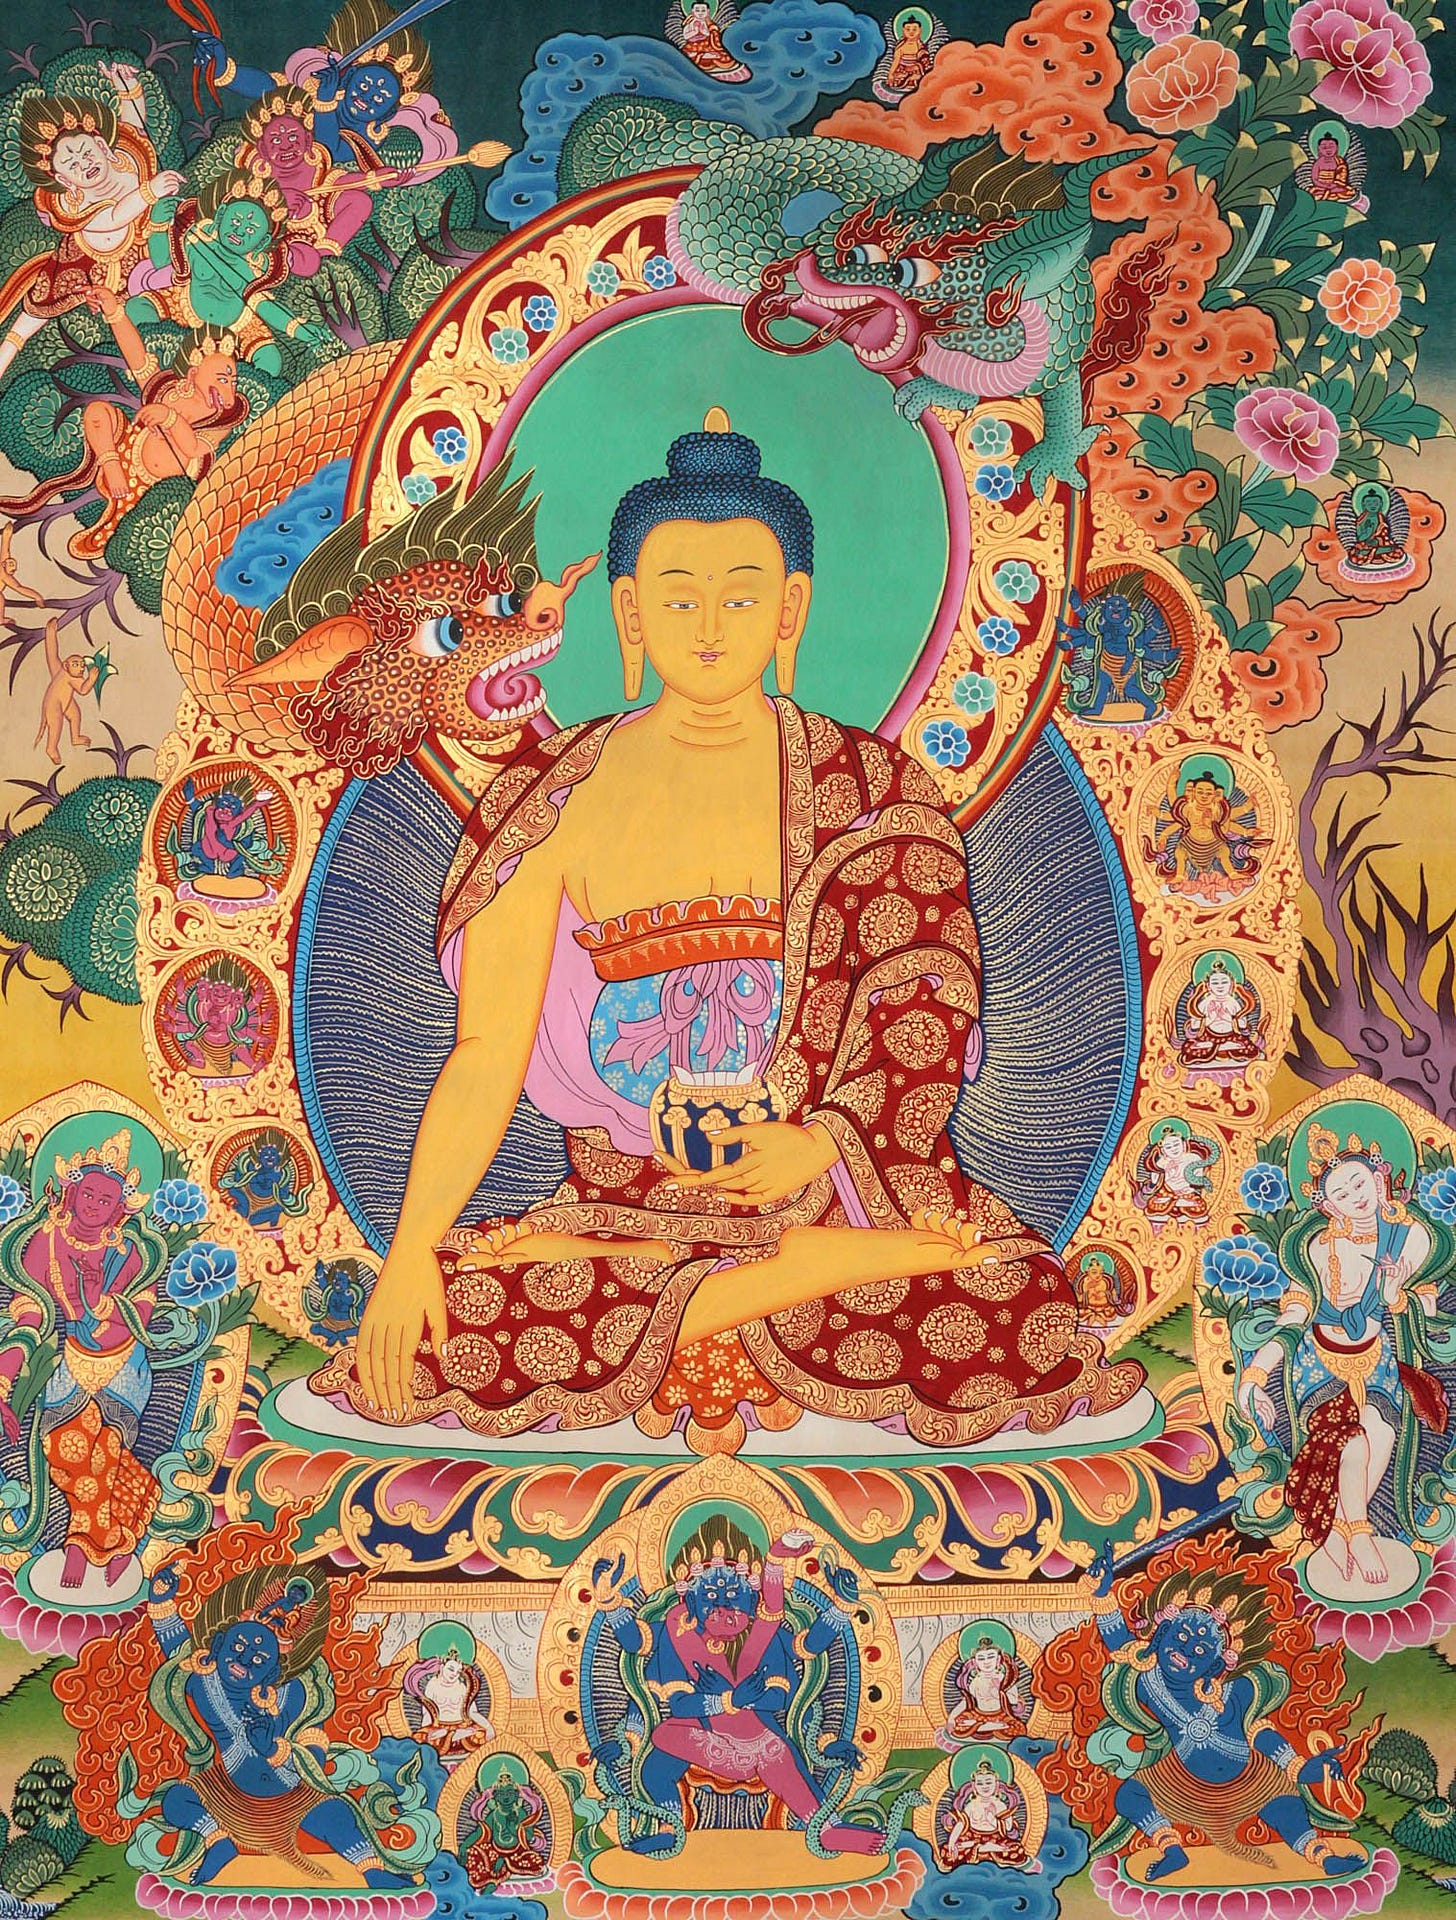 The Temptation of Shakyamuni Buddha by Mara | Buddhism art ...